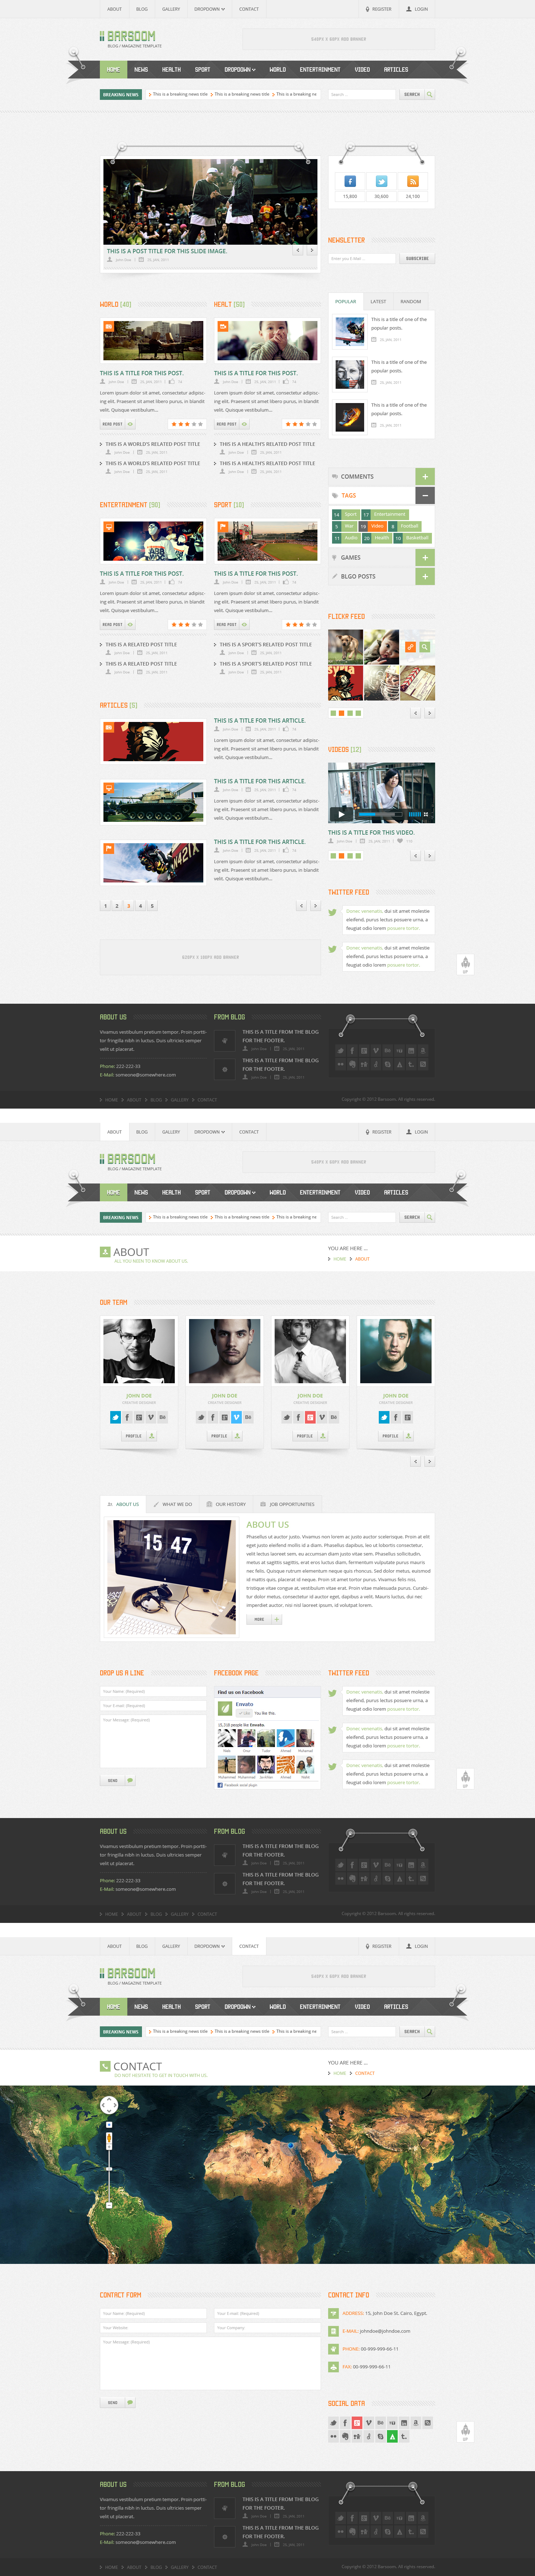 Barsoom - PSD Template by sheko-elanteko